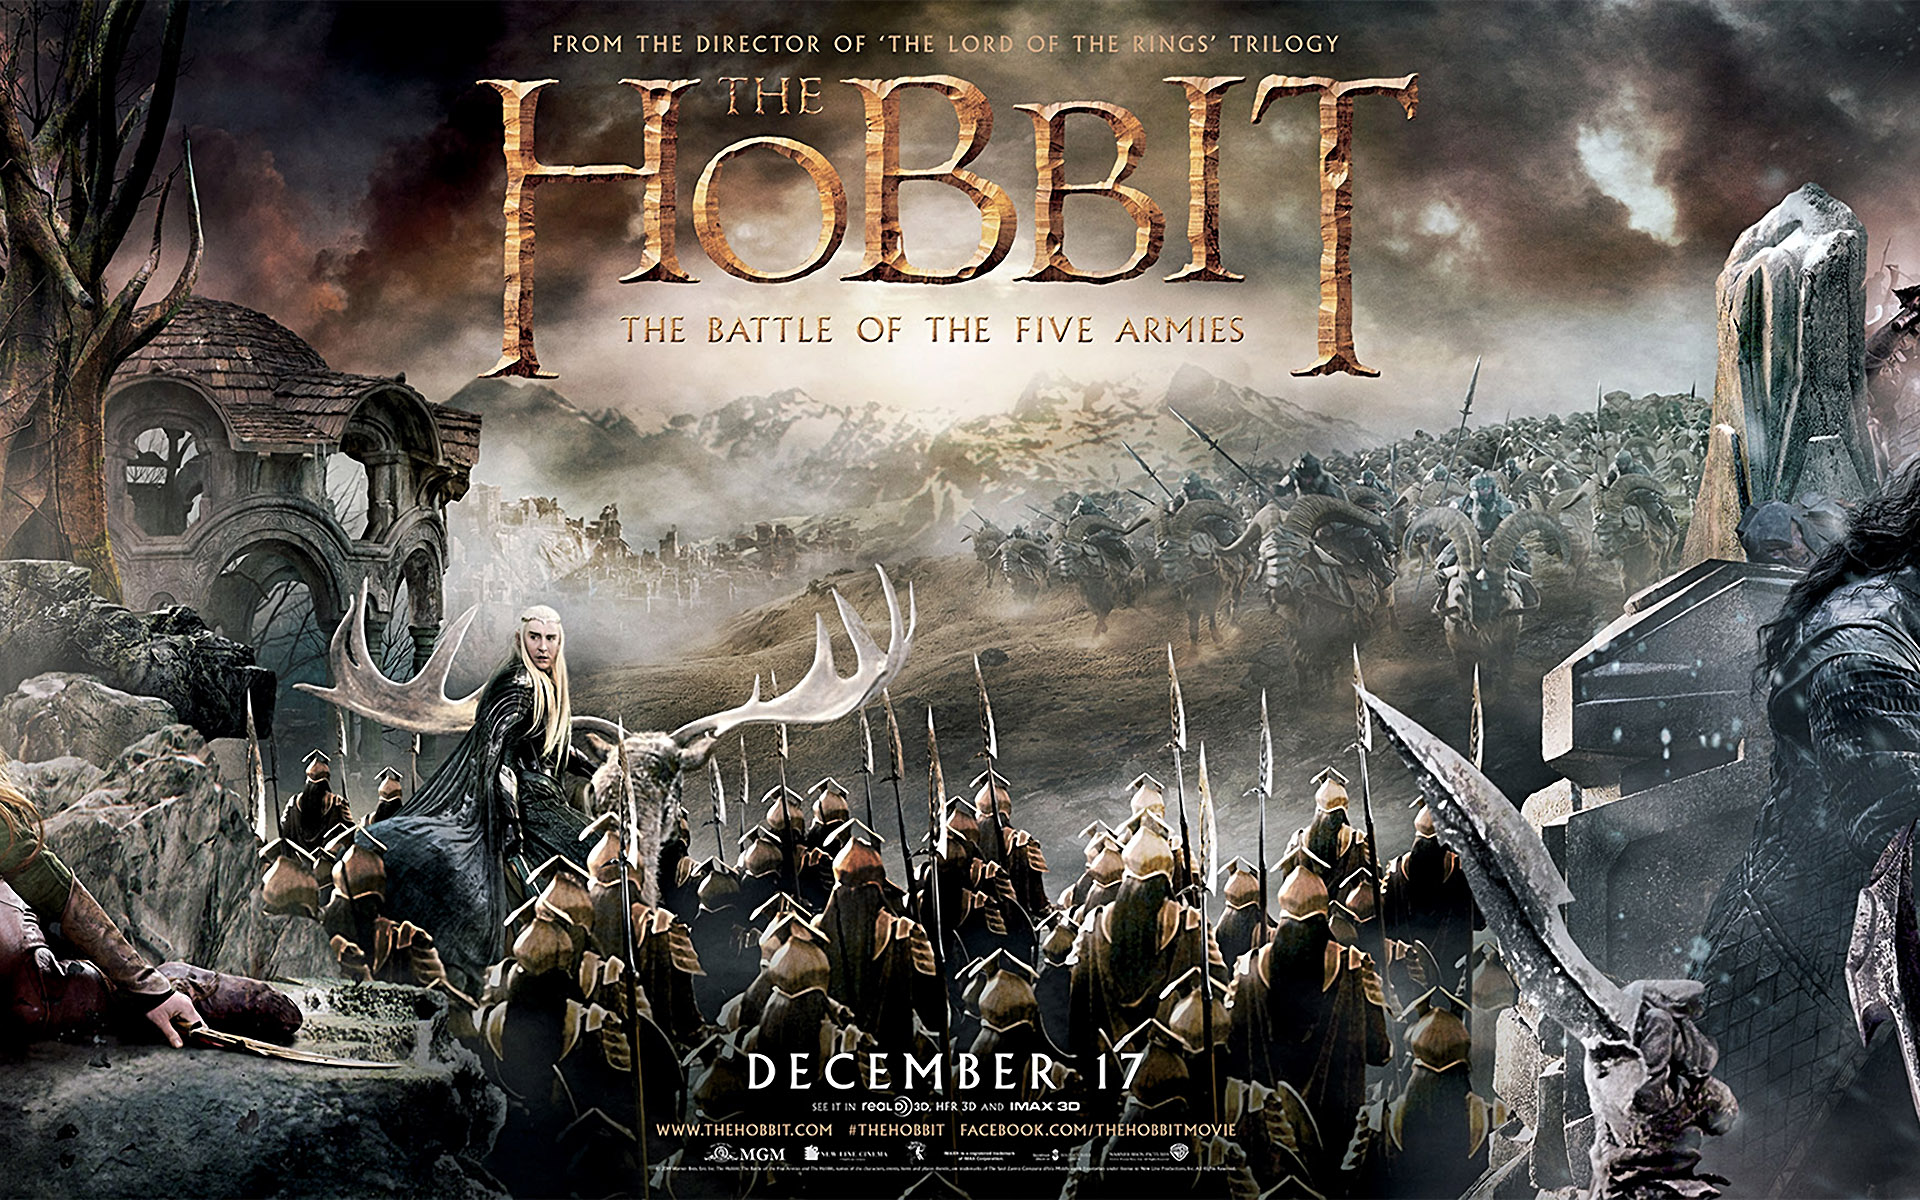 The Hobbit Images Posters HD Wallpaper And Background Photos